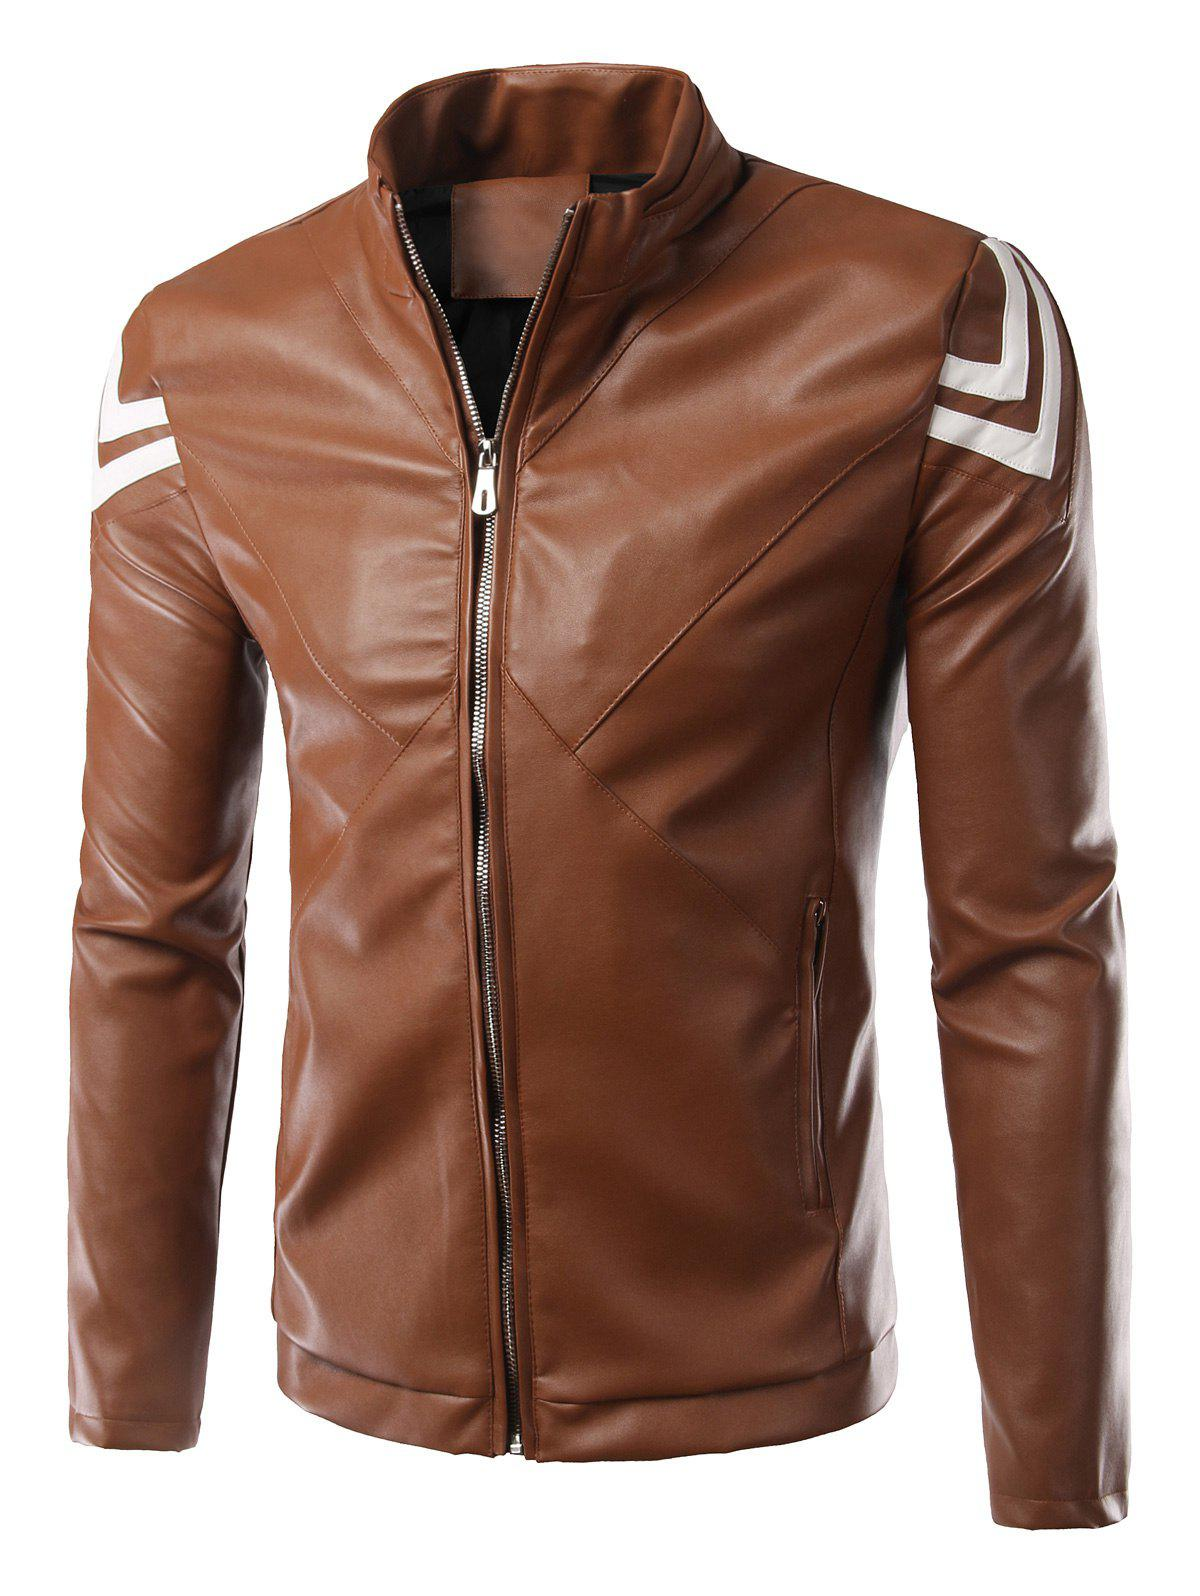 Selvedge Embellished Plus Size Stand Collar Long Sleeve PU-Leather Men's Jacket - COFFEE 5XL